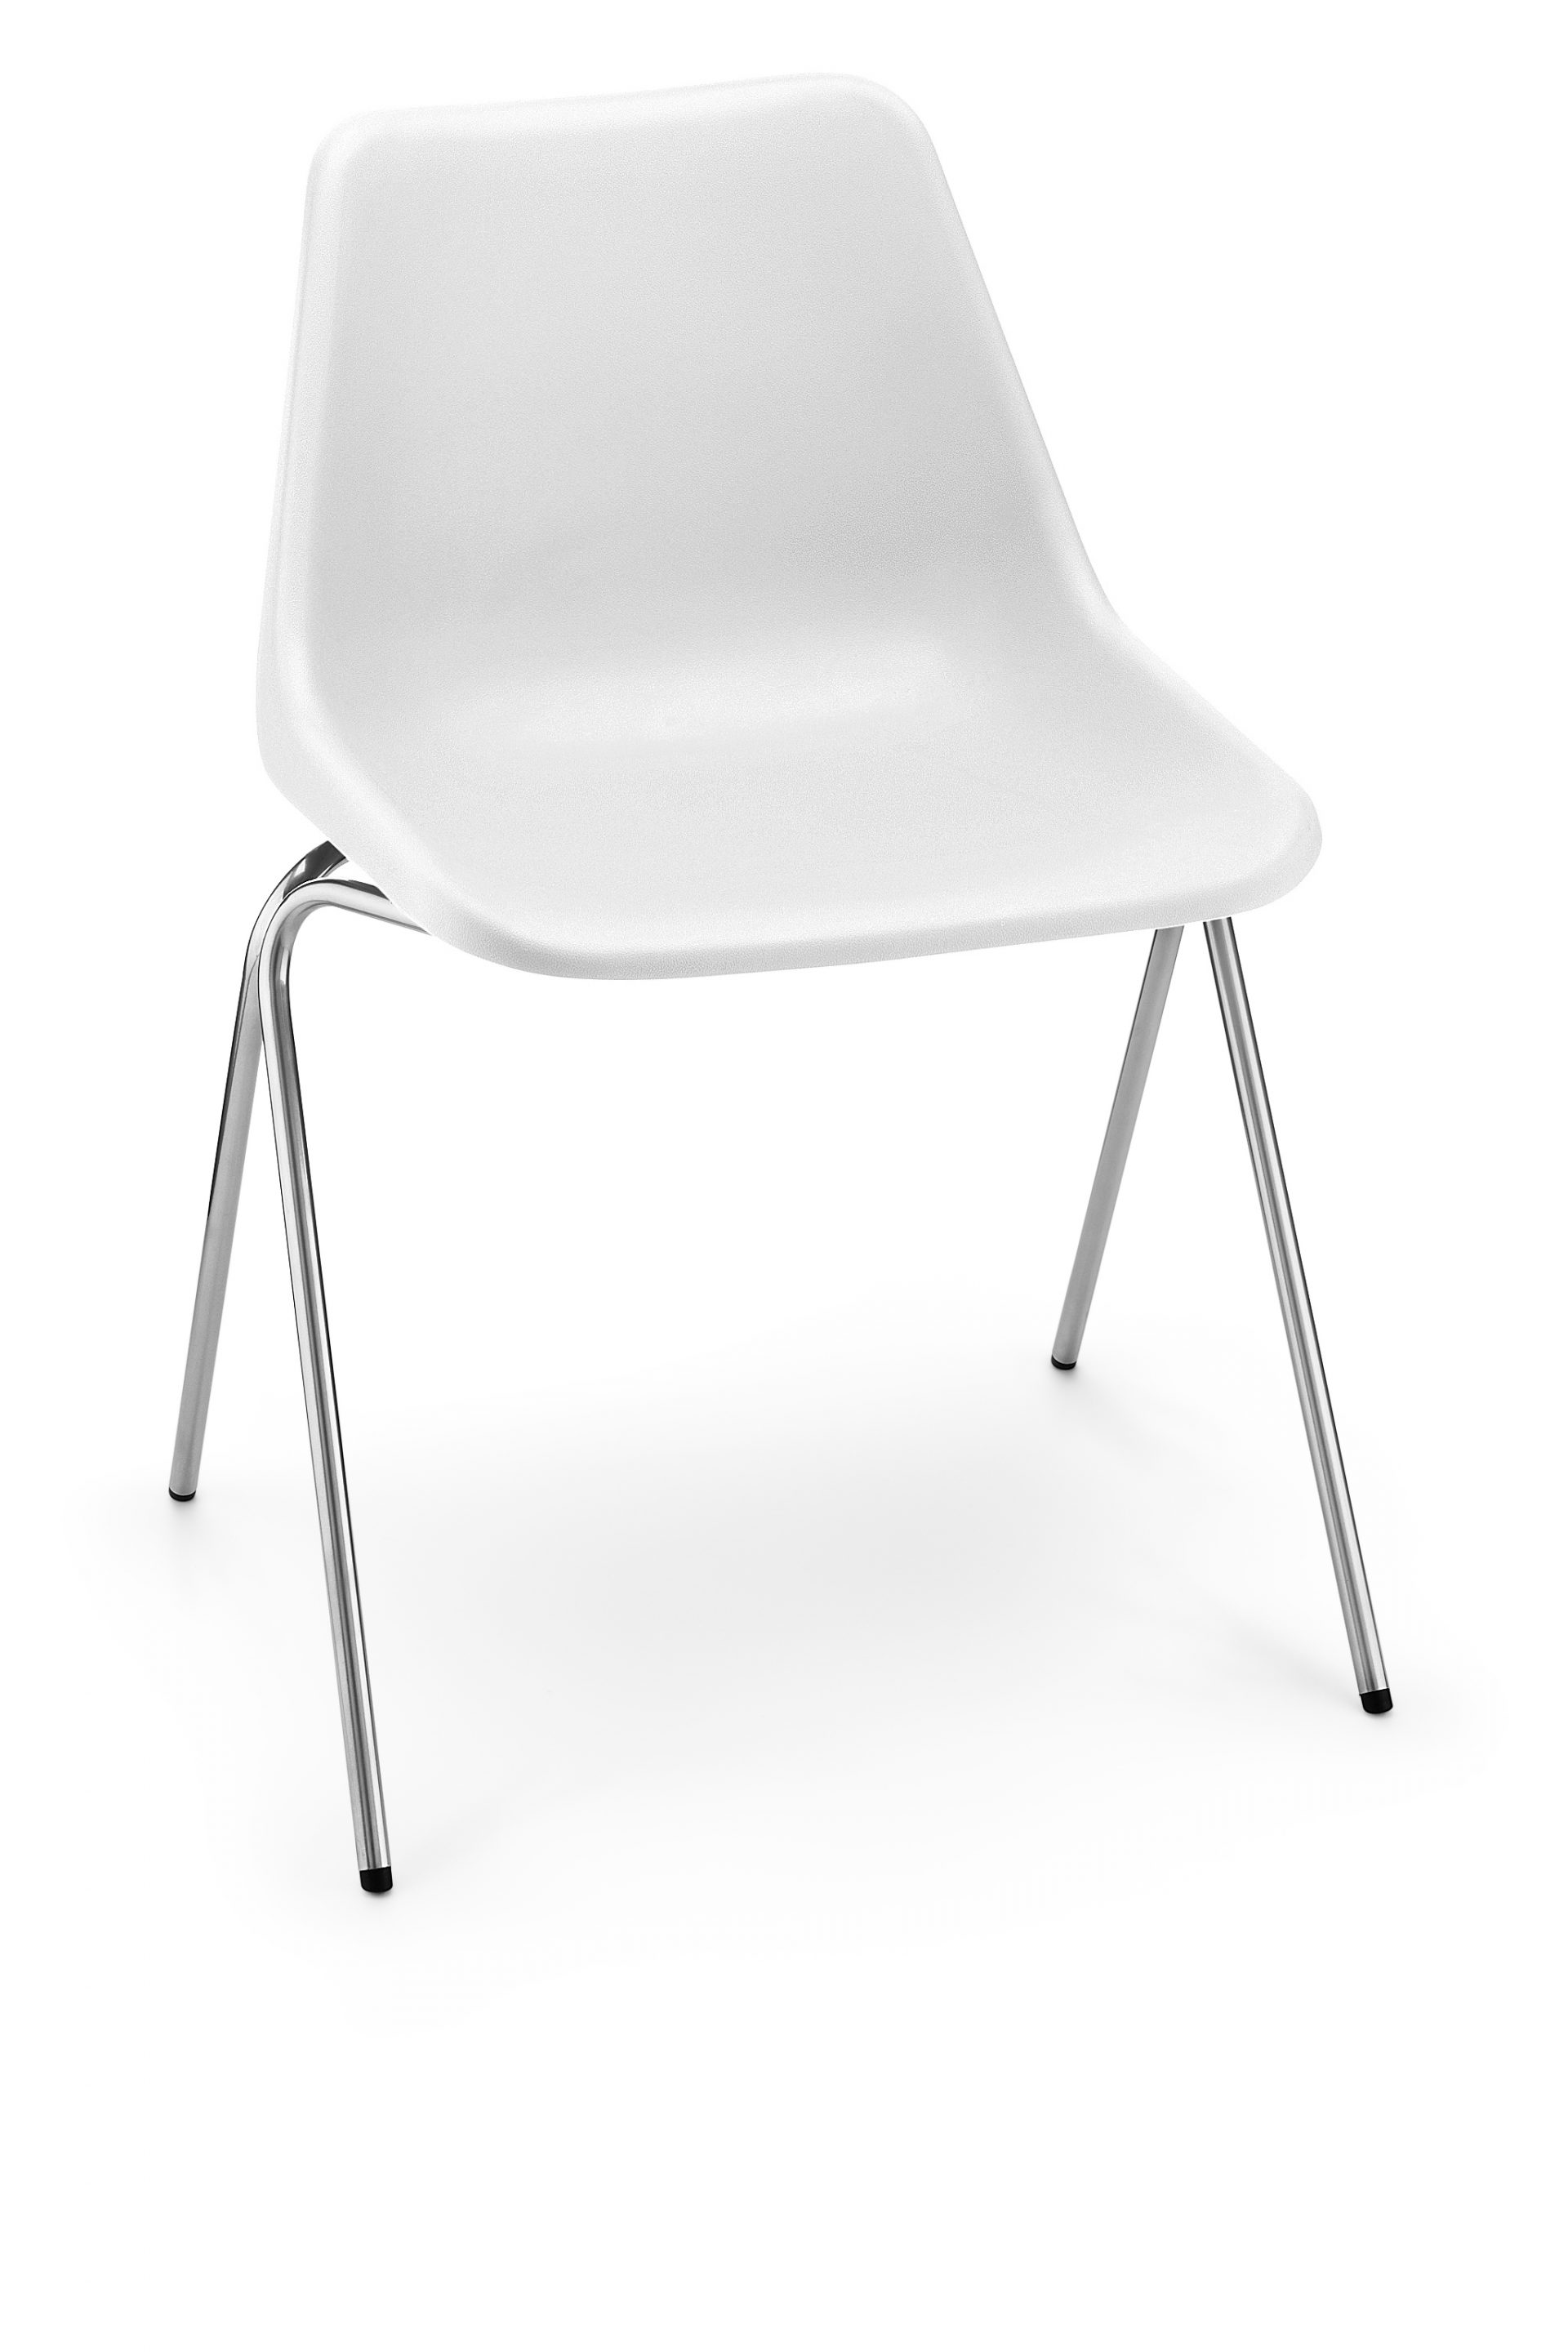 Robin Day Polyside Chair By Robin Day